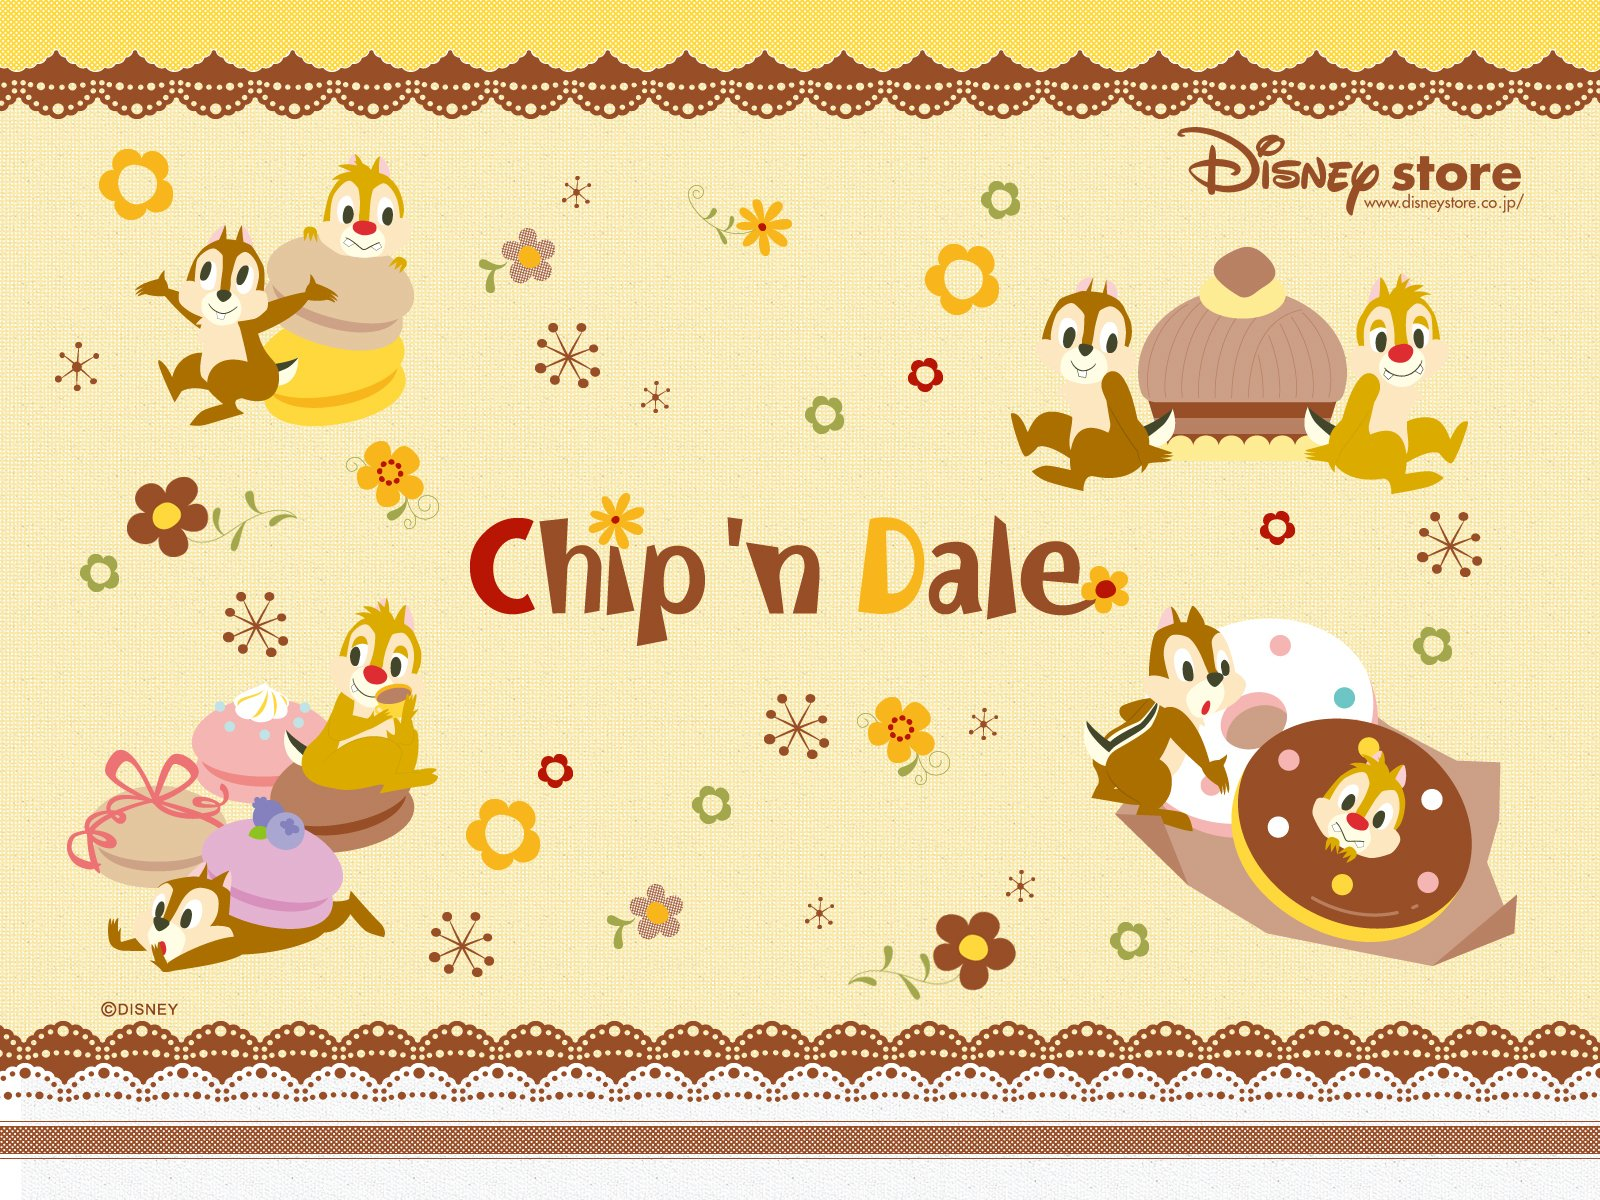 Chip 39 n 39 dale wallpaper and background image 1600x1200 - Chip n dale wallpapers free download ...